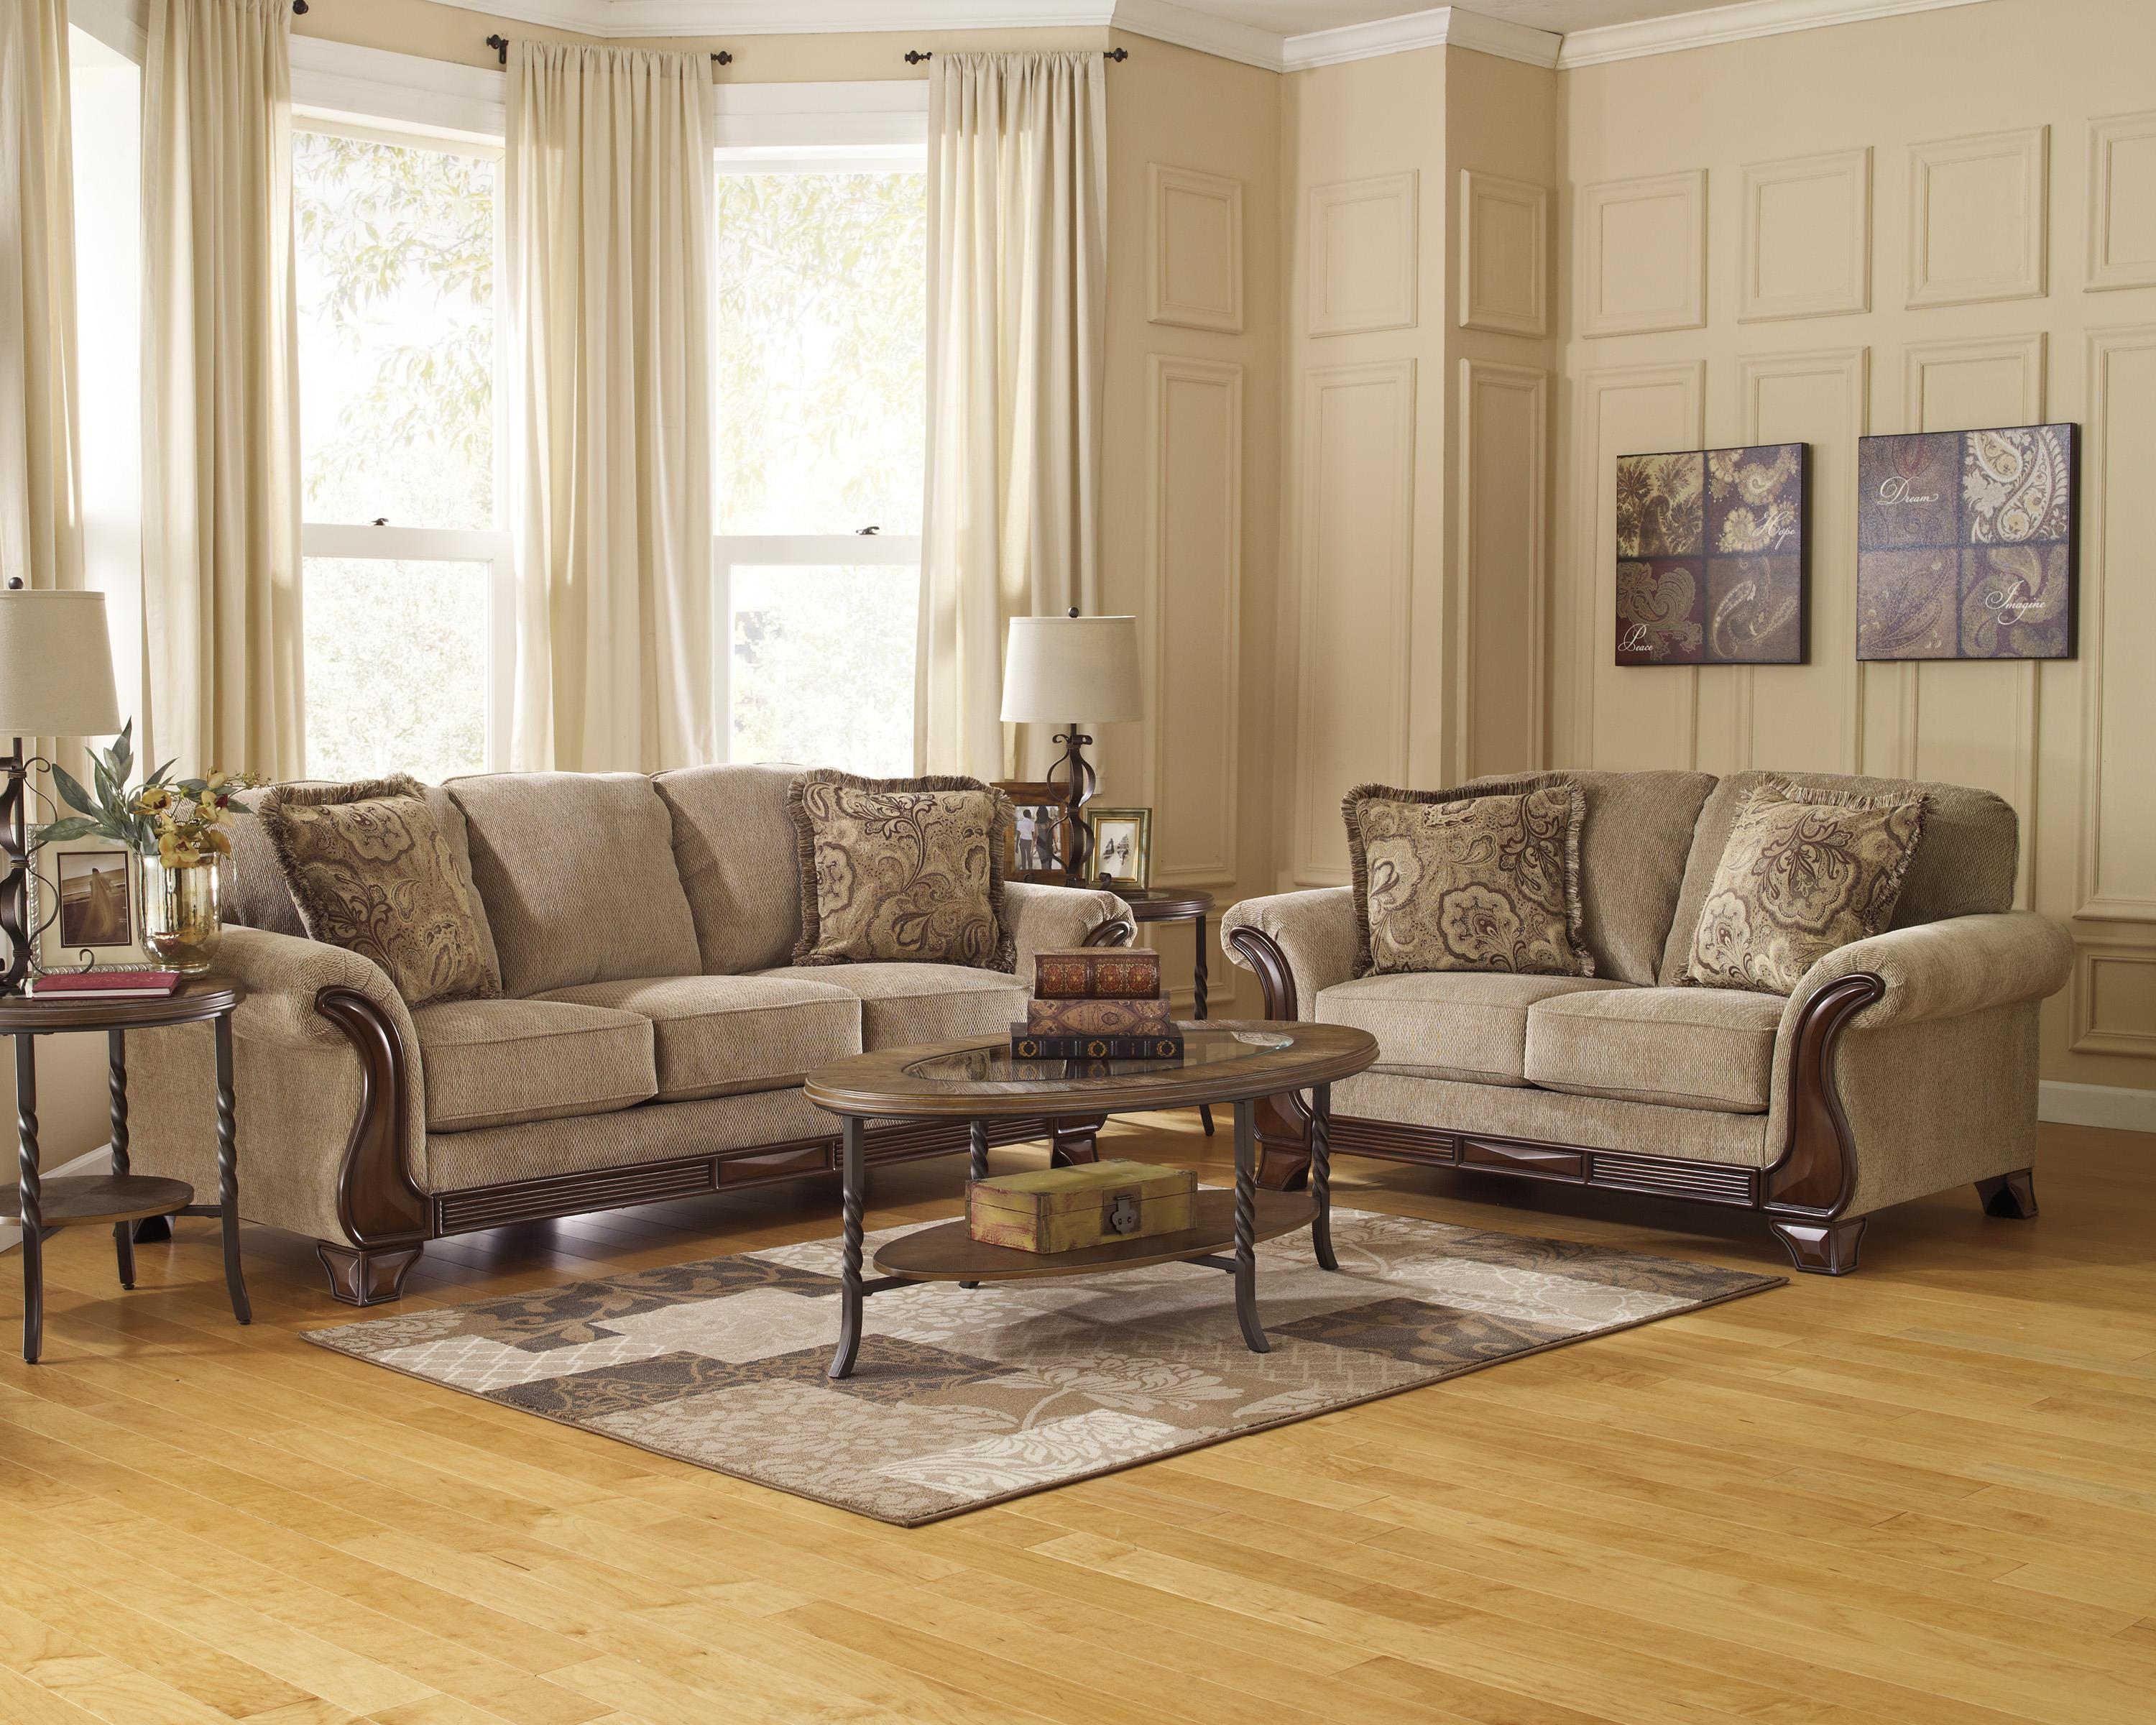 Signature Design by Ashley Lanett Stationary Living Room Group - Item Number: 44900 Living Room Group 1